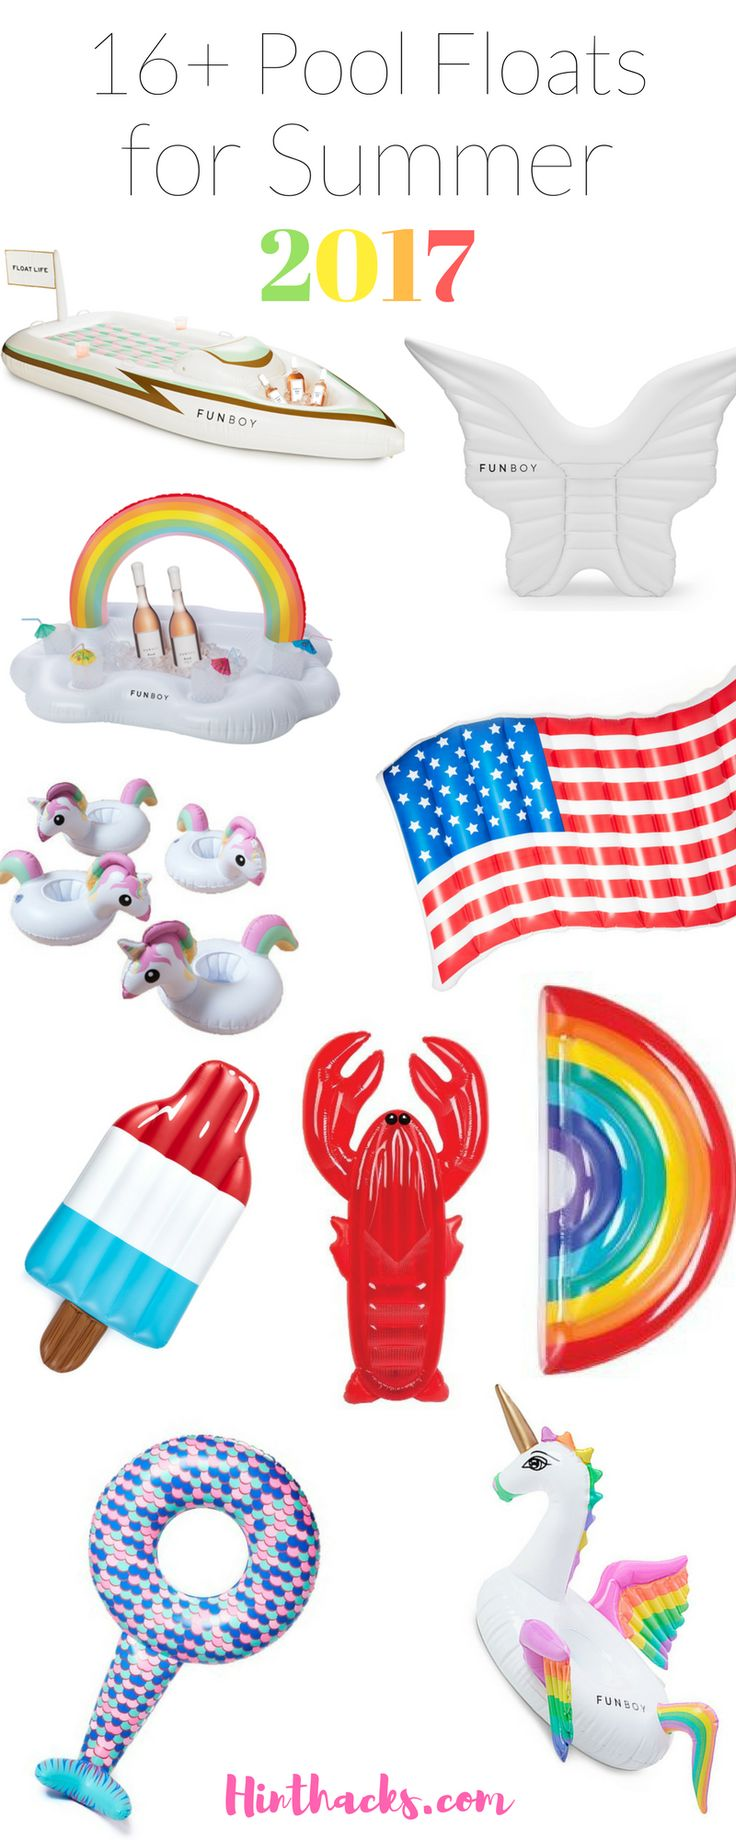 16 Pool Floats for adults   Teen Pool Floats   Summer Party decor   Unicorn Float   4th July Floats   pool float storage   Pool Float games   Cute Floats   Giant Floats   pool floats 2017